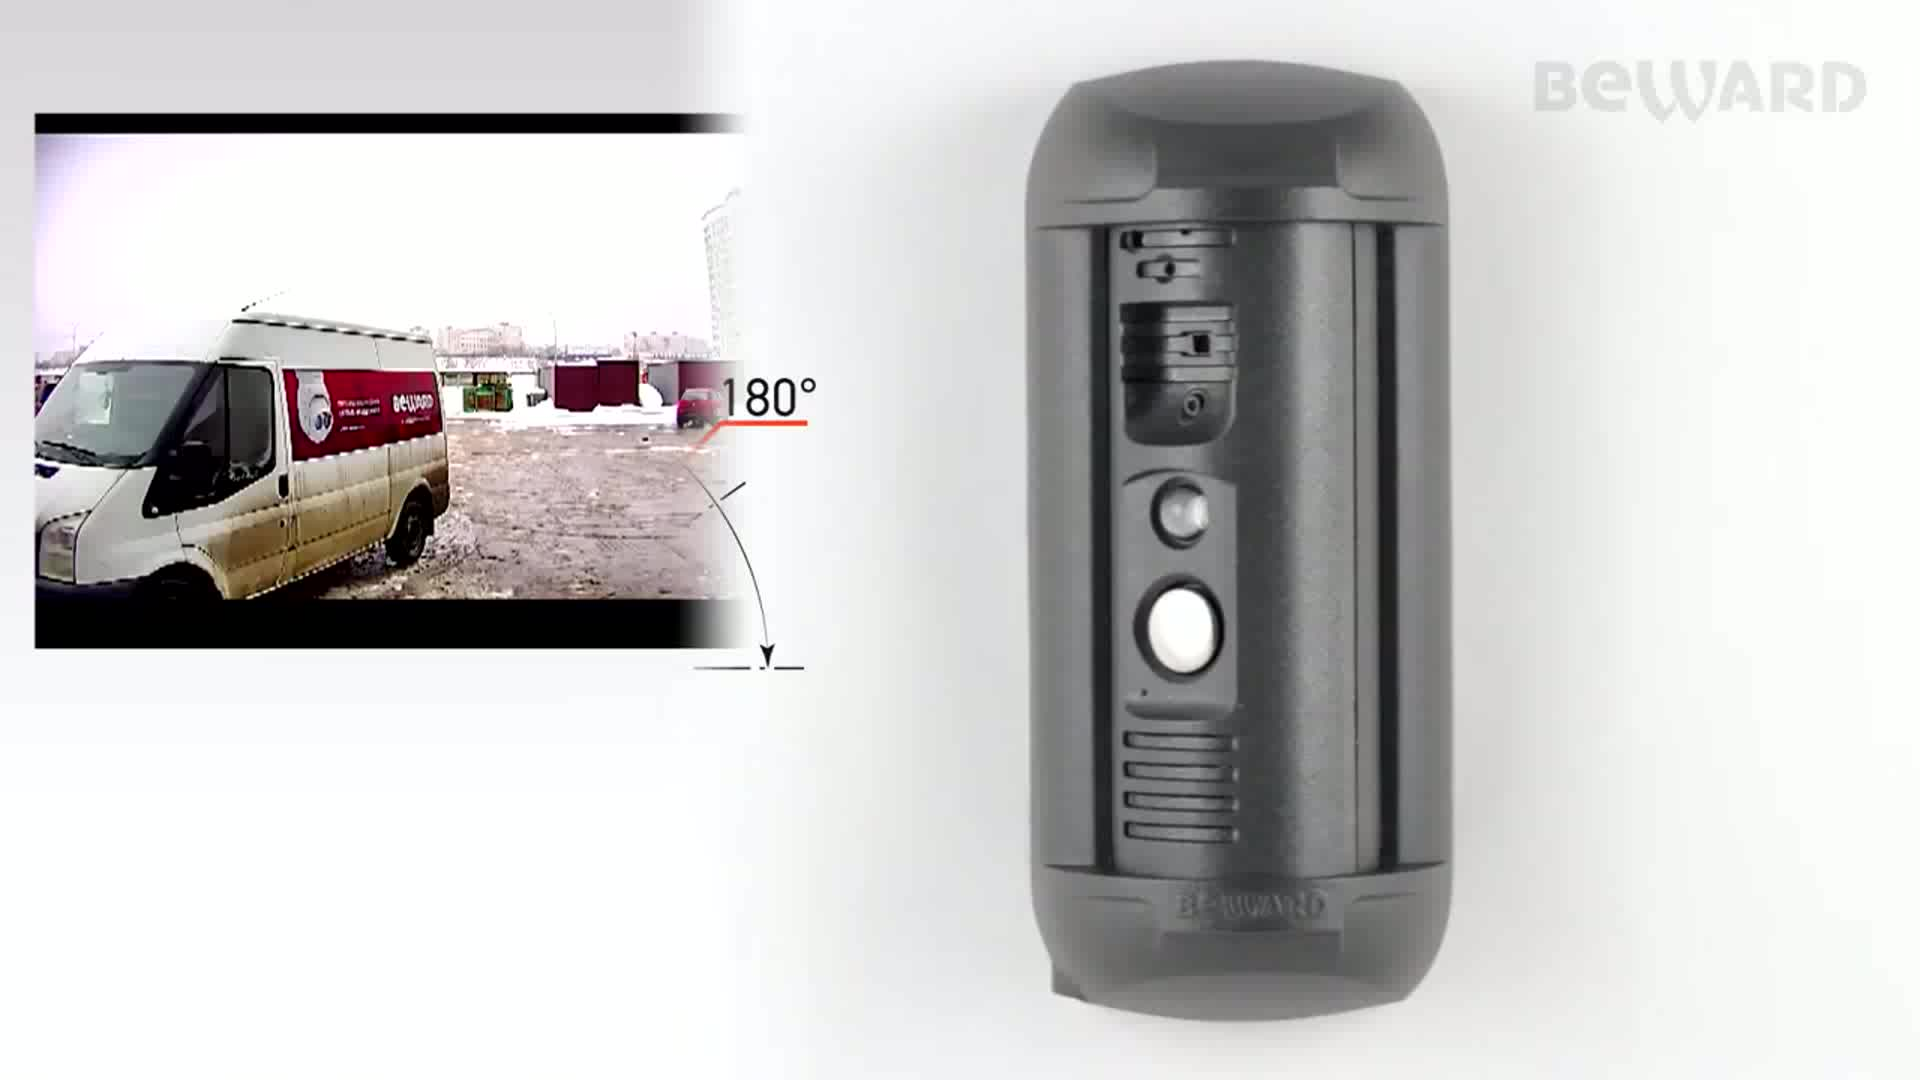 Sip ip video intercom video doorbell system for 3-apartment